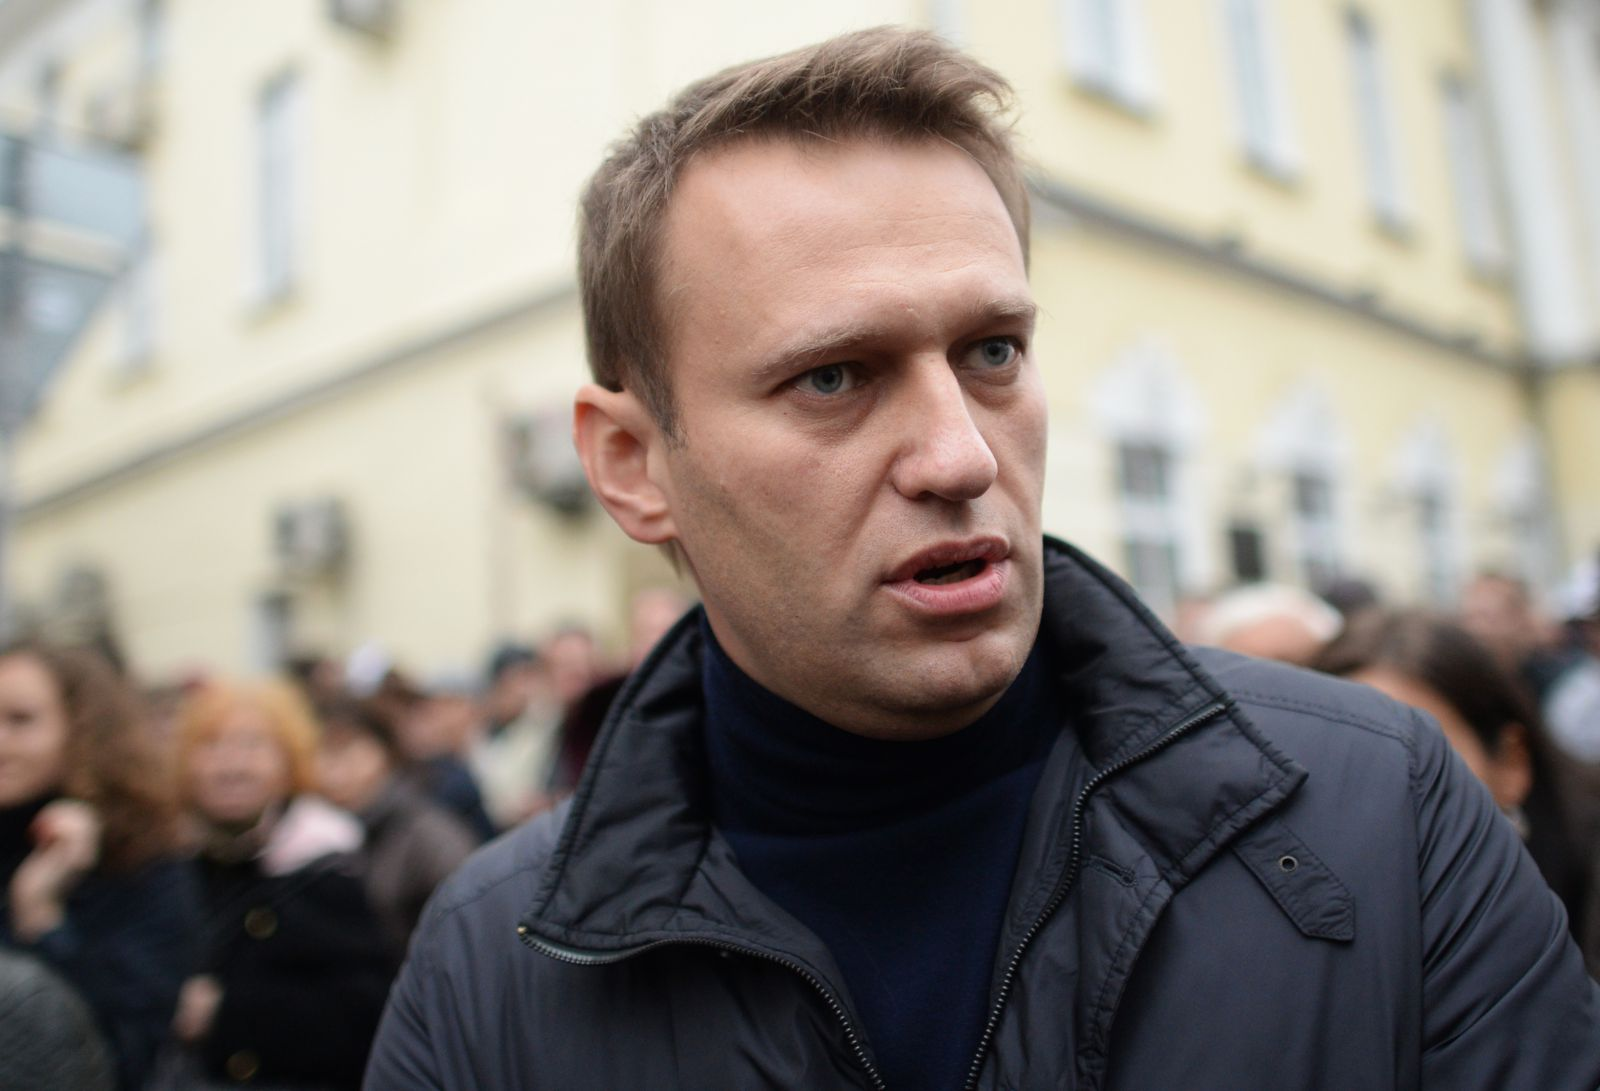 Kremlin critic Navalny now able to walk